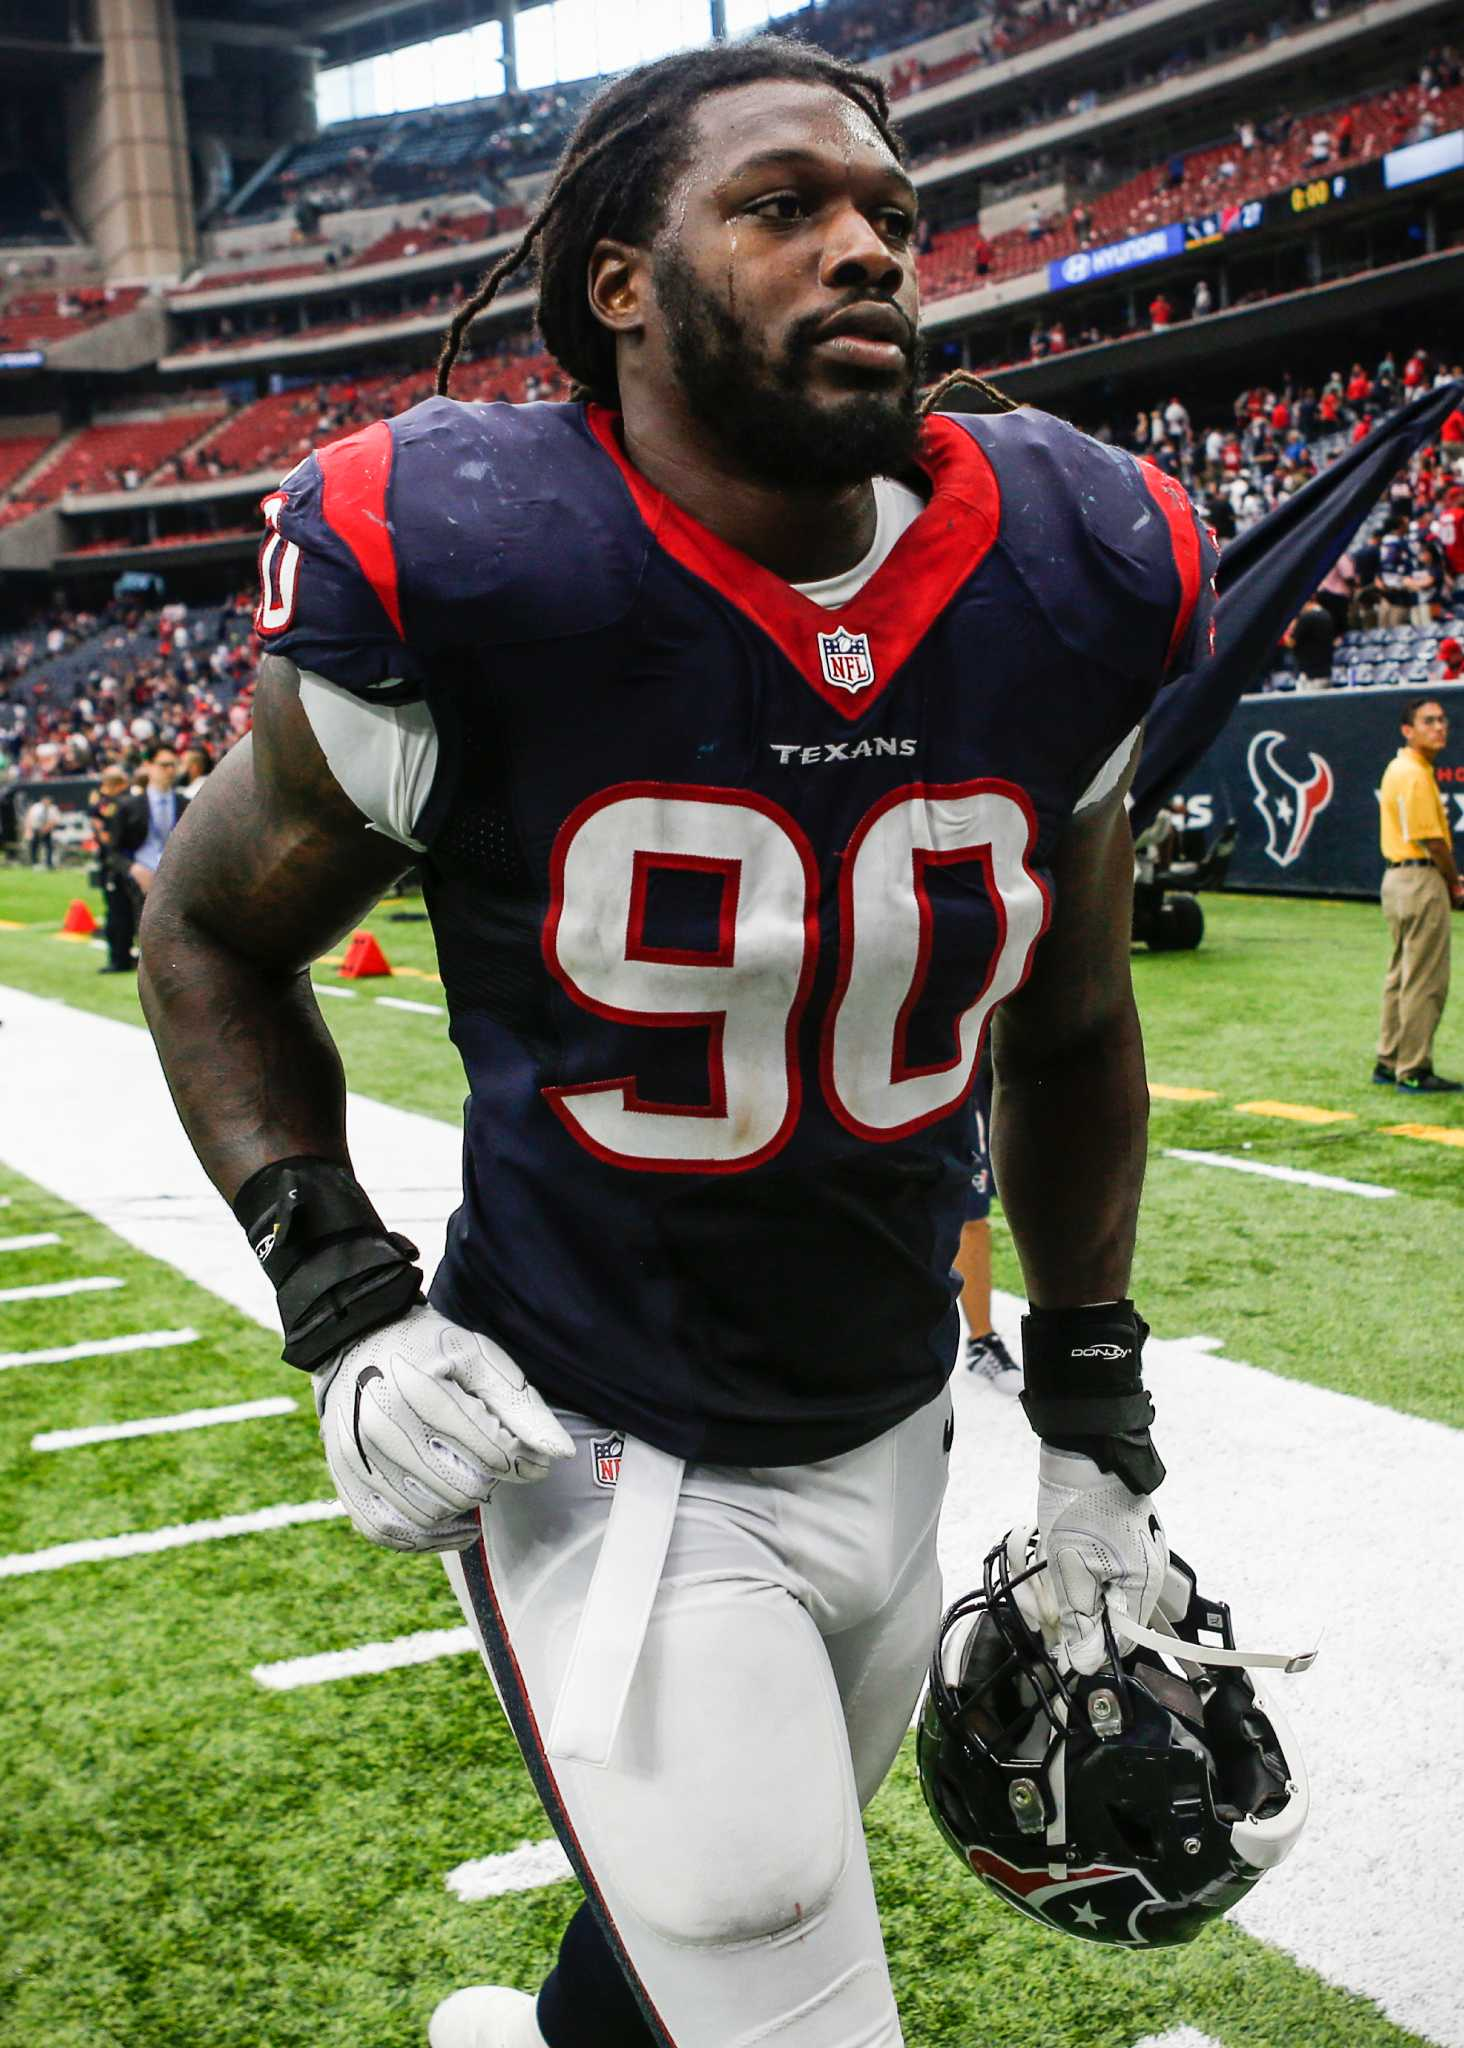 Texans Jadeveon Clowney adapts to switch from linebacker to